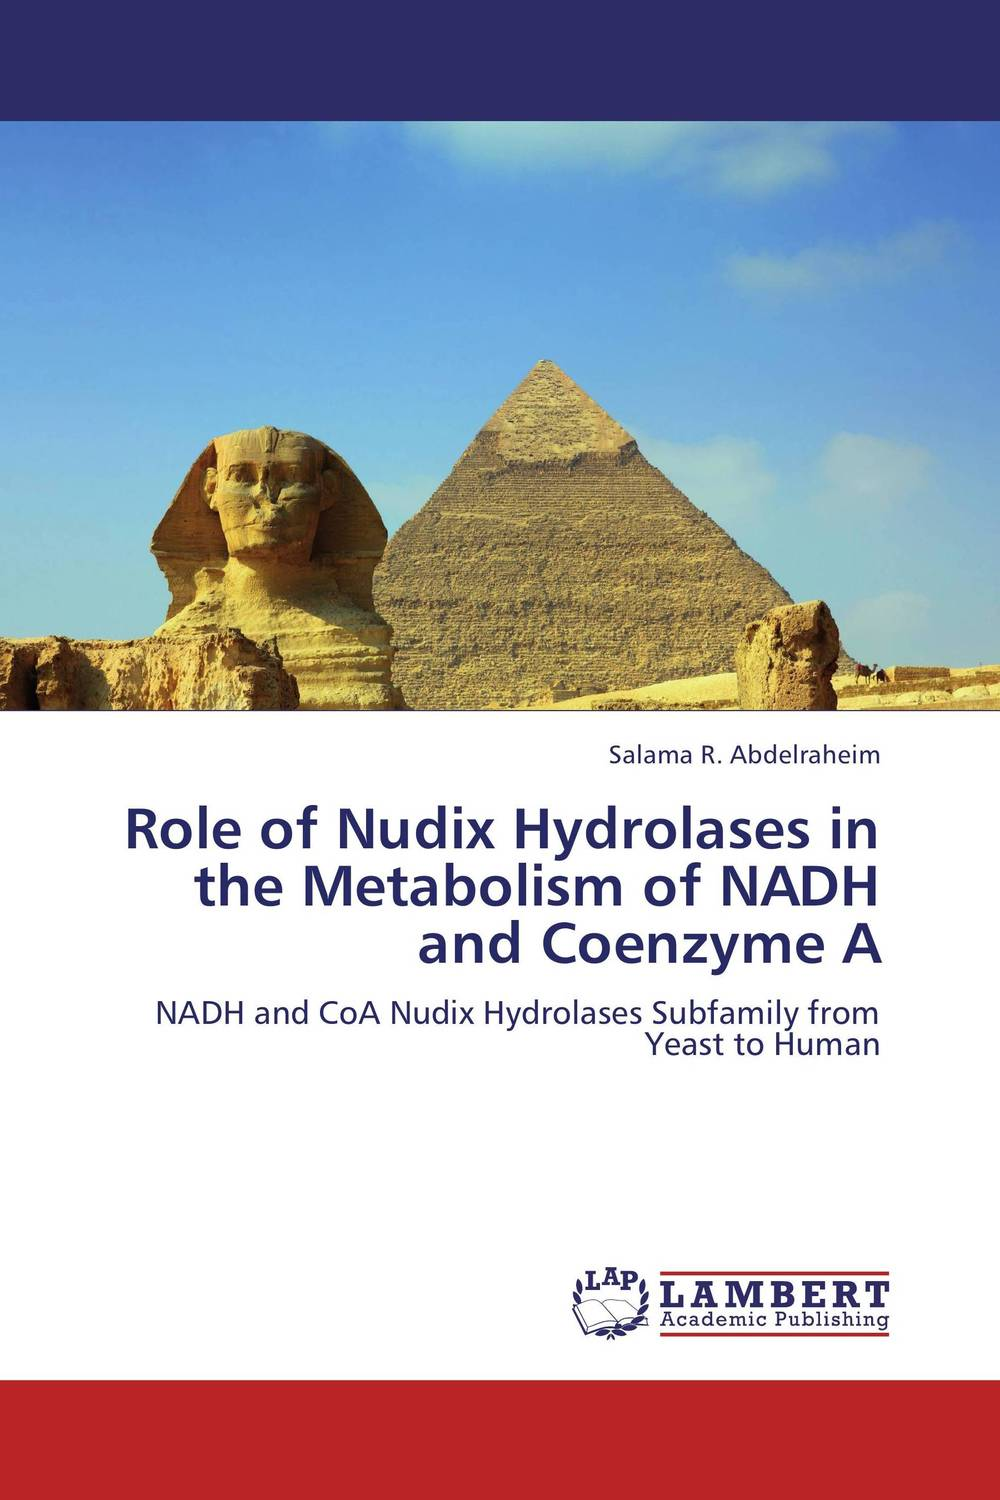 Role of Nudix Hydrolases in the Metabolism of NADH and Coenzyme A ganesh deshmukh sudarshan latake and avinash satpute role of trichoderma viride in chickpea wilt